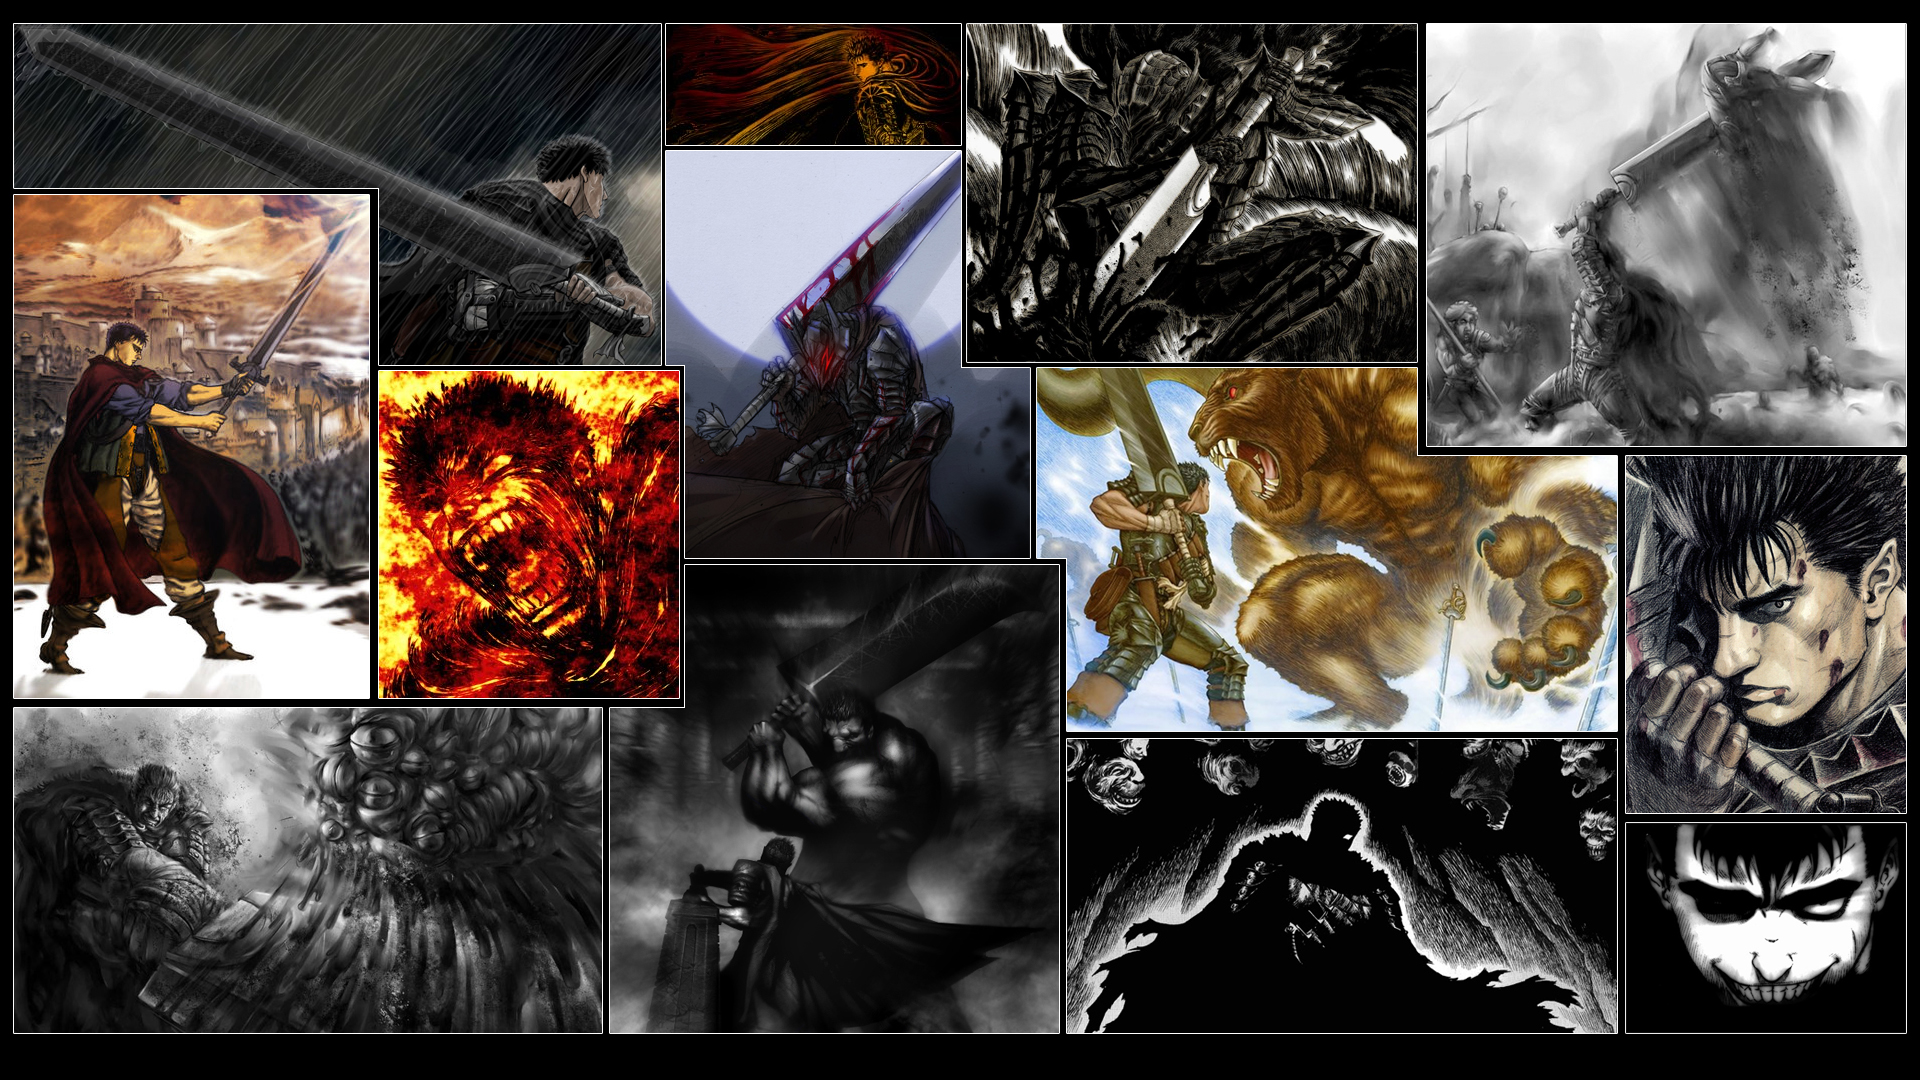 Berserk_Wallpaper_by_GT_Orphan.jpg